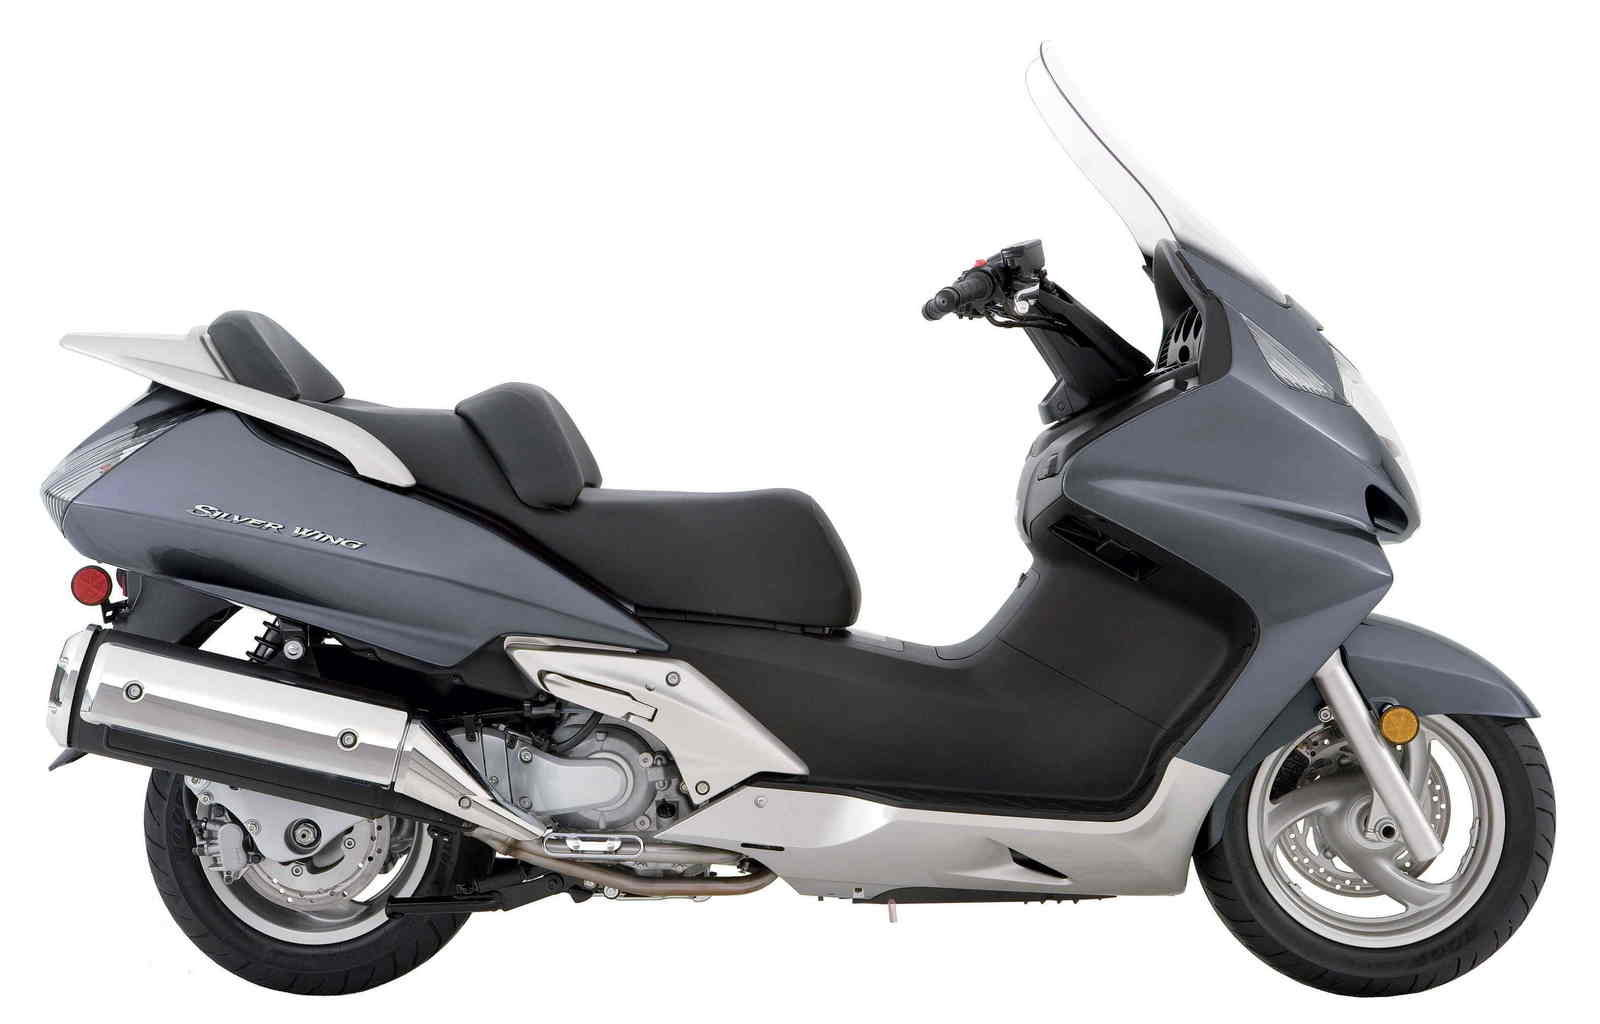 2007 honda silver wing review top speed. Black Bedroom Furniture Sets. Home Design Ideas